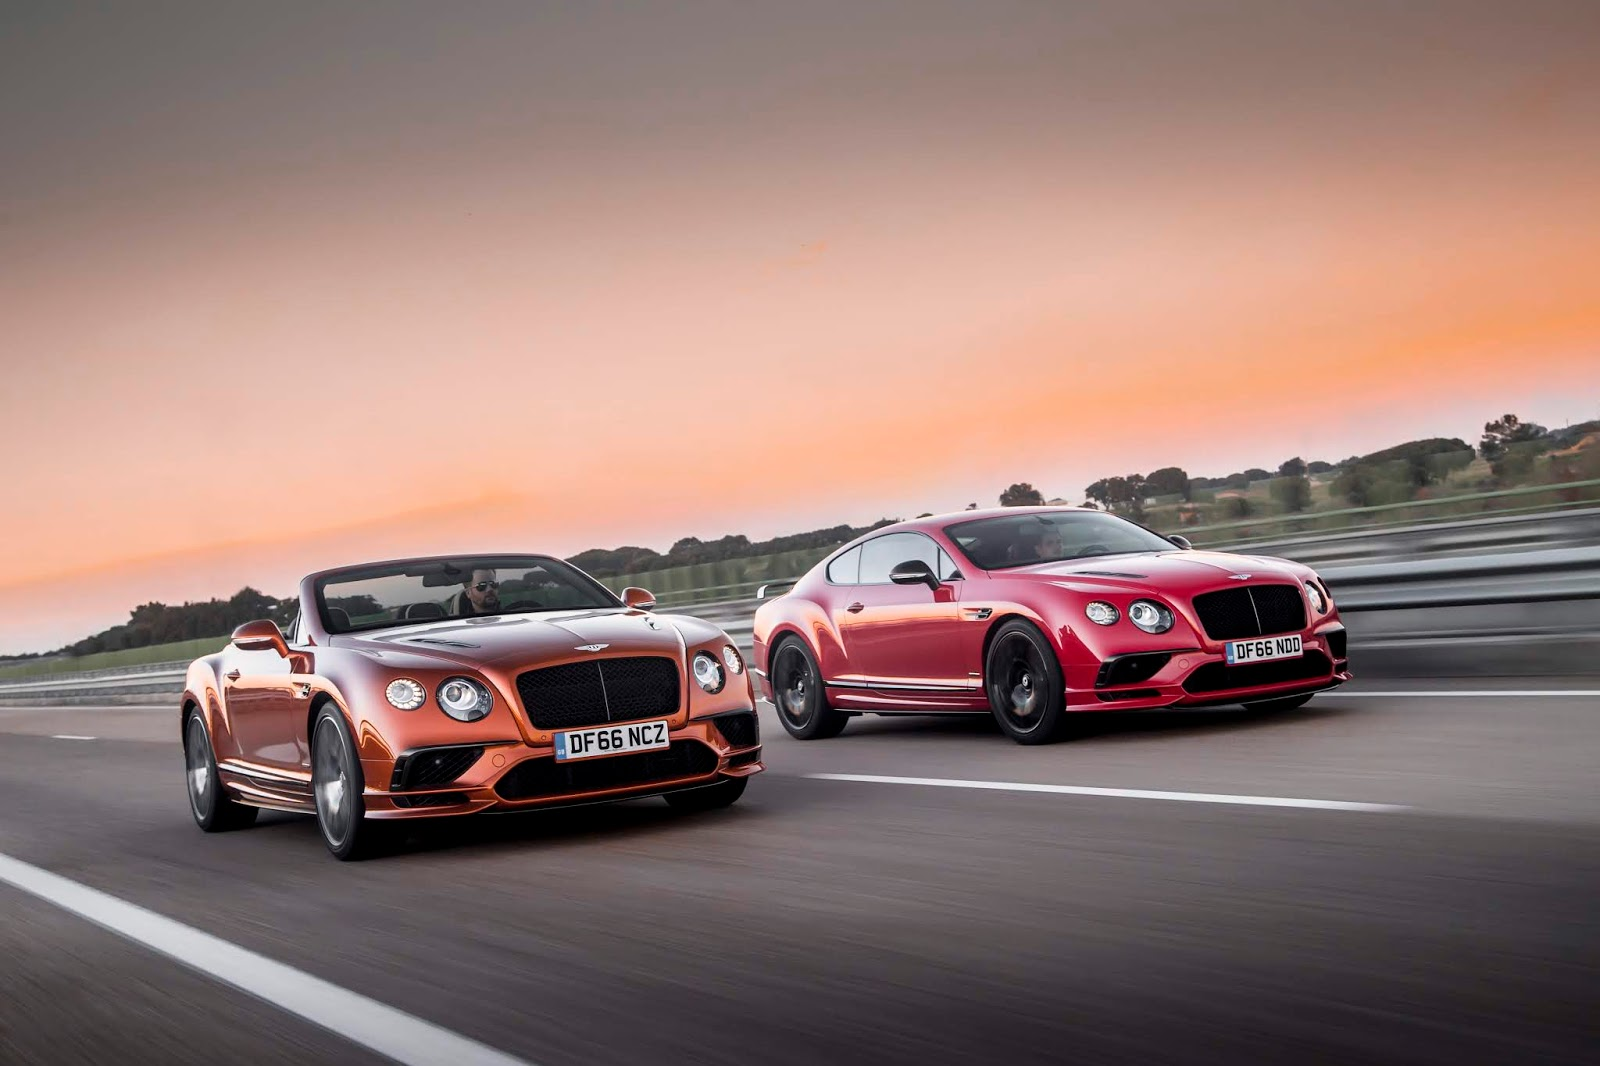 Coupe and Convertible 002 11 σταθμοί στην 100χρονη πορεία της Bentley